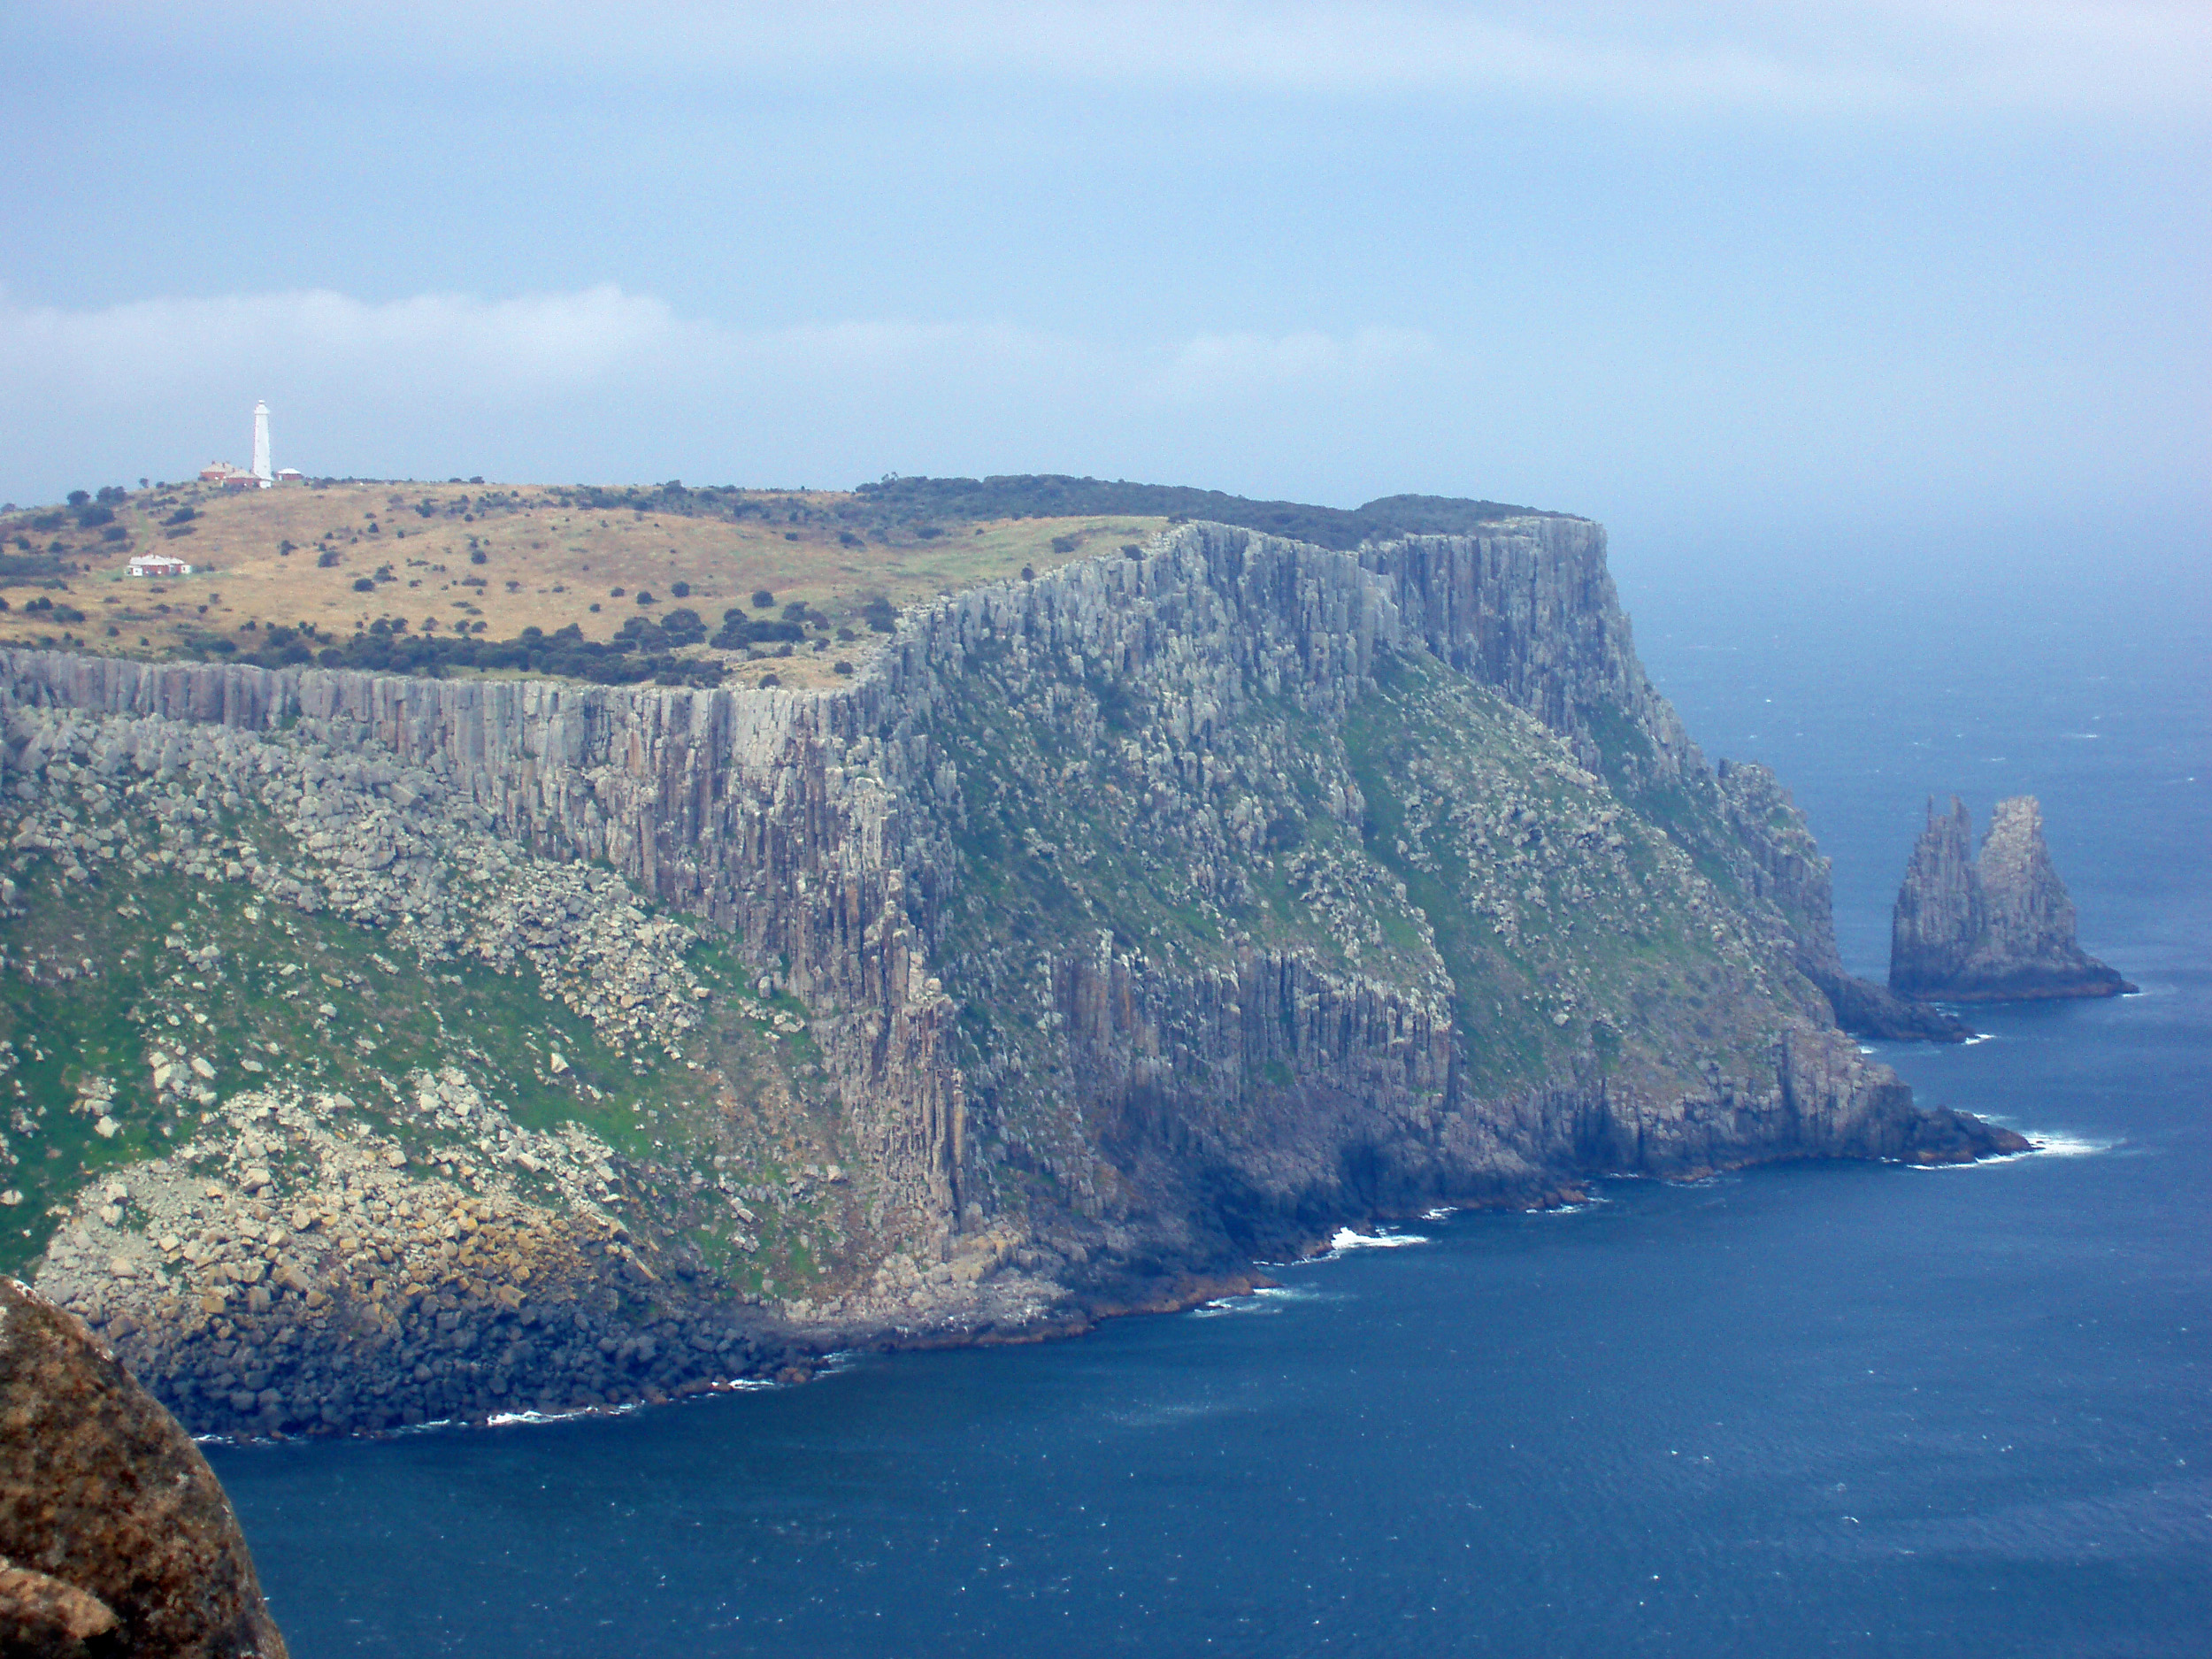 tasman island and lighthouse viewed from cape pillar